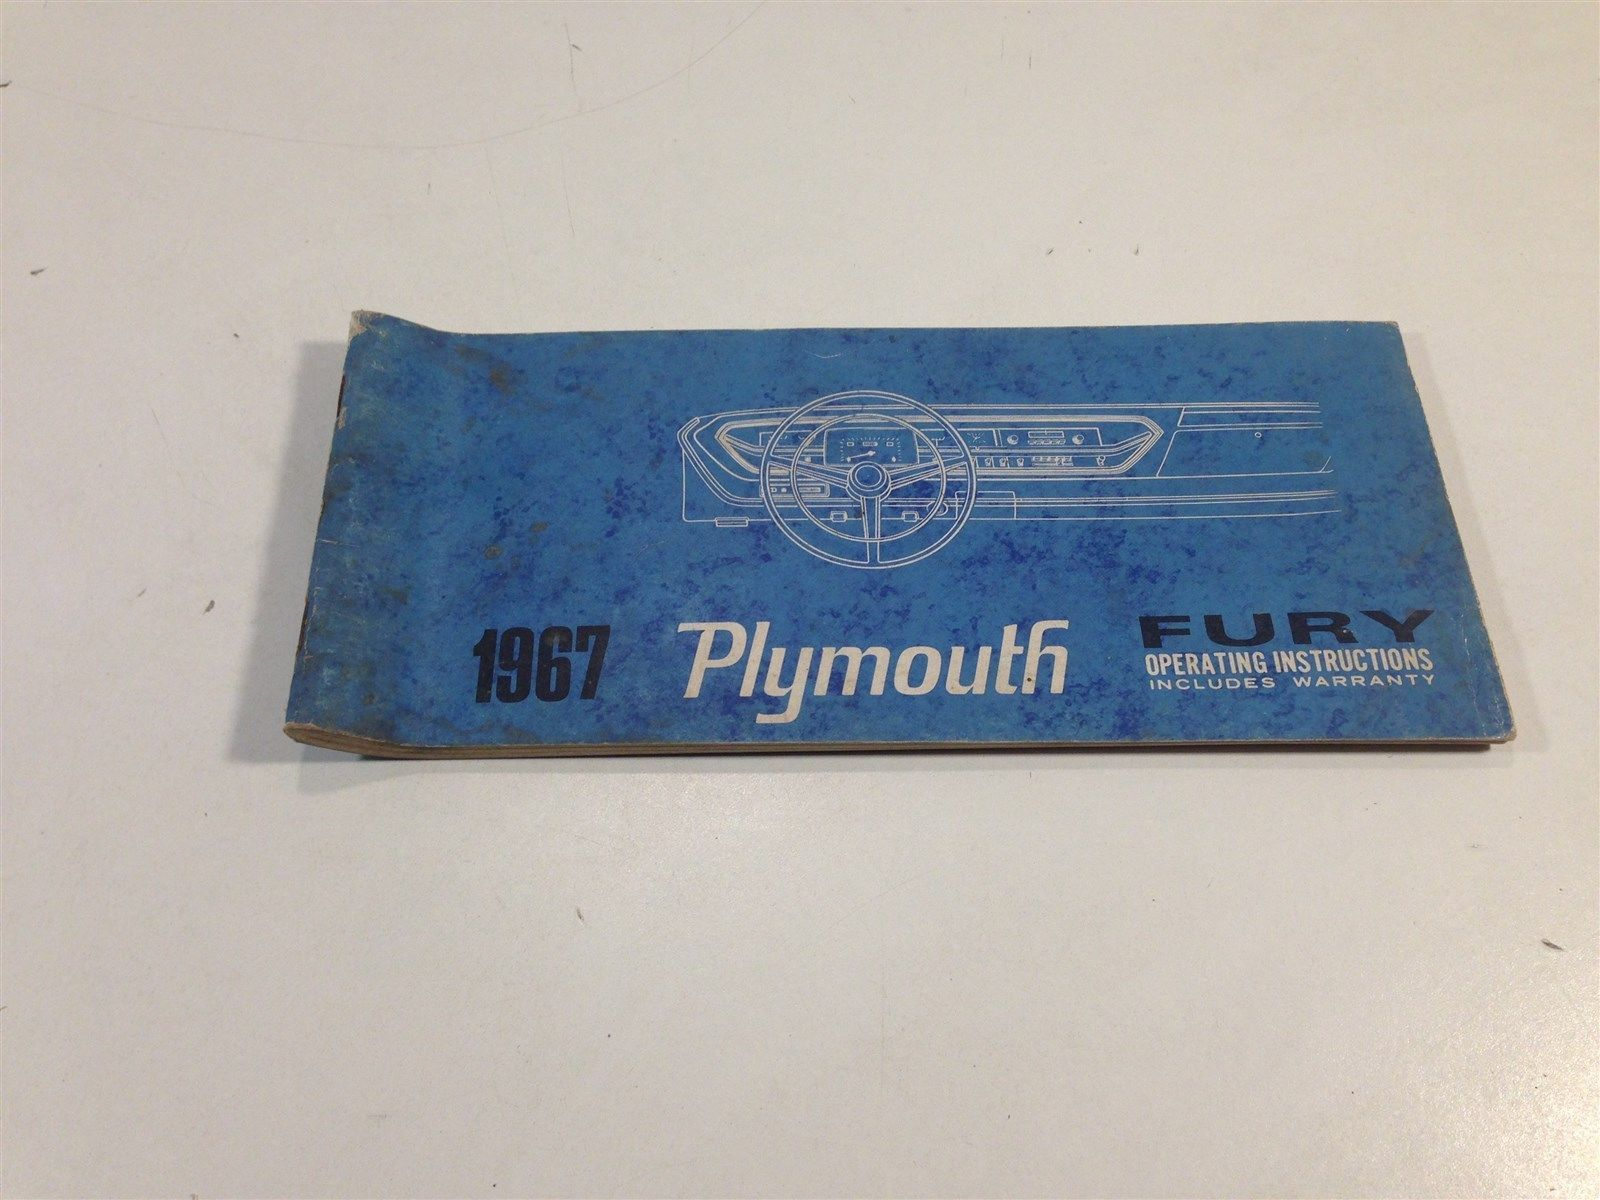 1967 Plymouth Fury Operating Instructions Warranty 81-570-7455 Glove Box